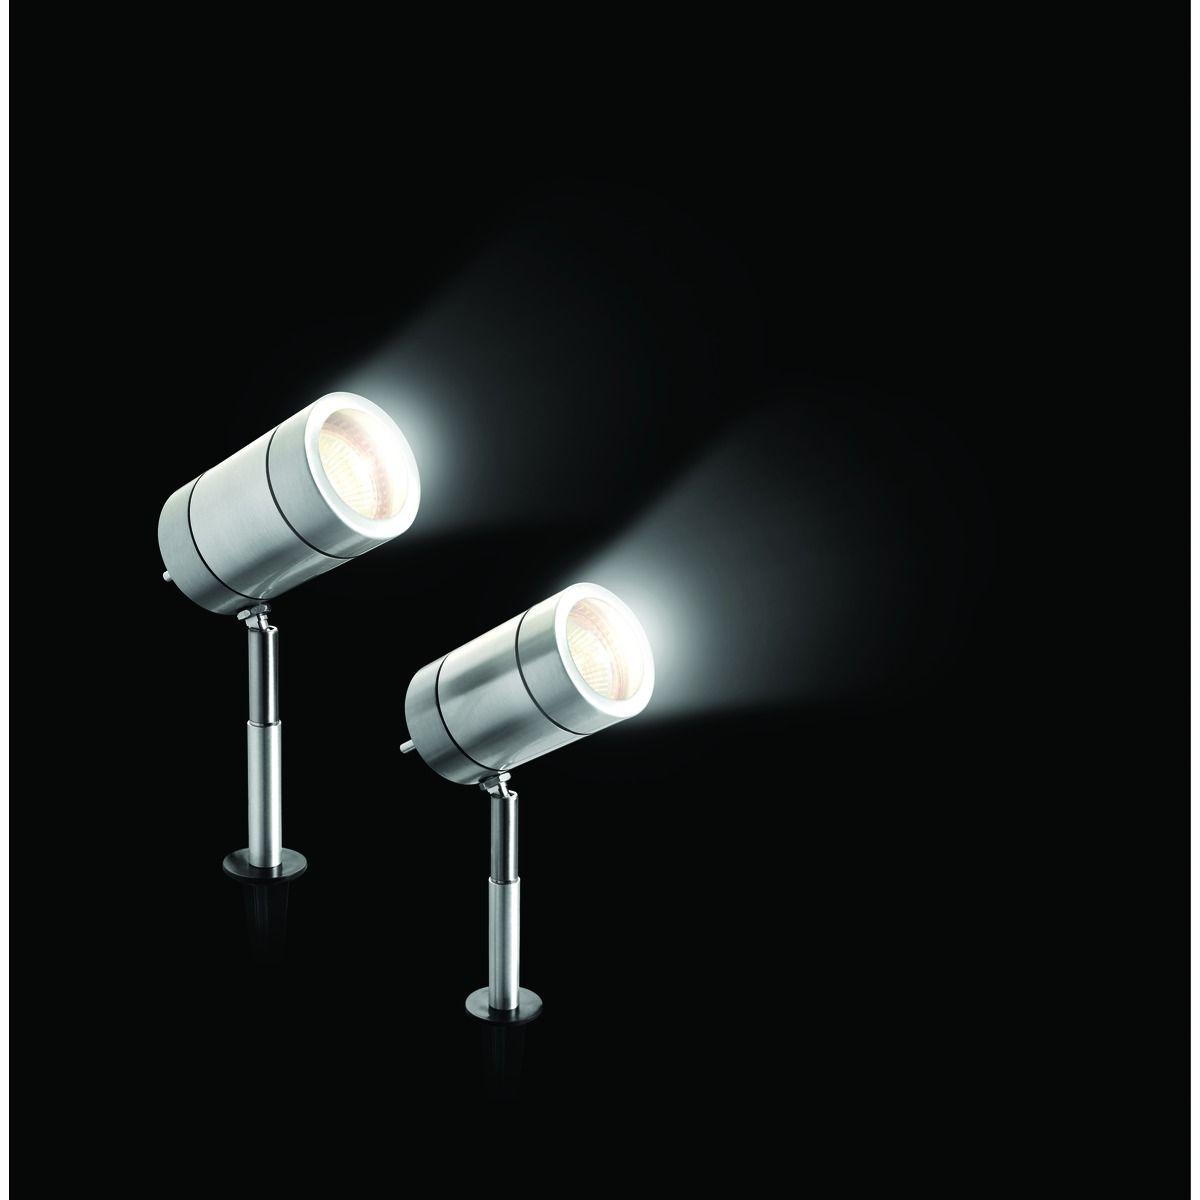 Wickes Garden Wall Lights : Garden Lanterns & Wall Lights Exterior Lights Wickes.co.uk